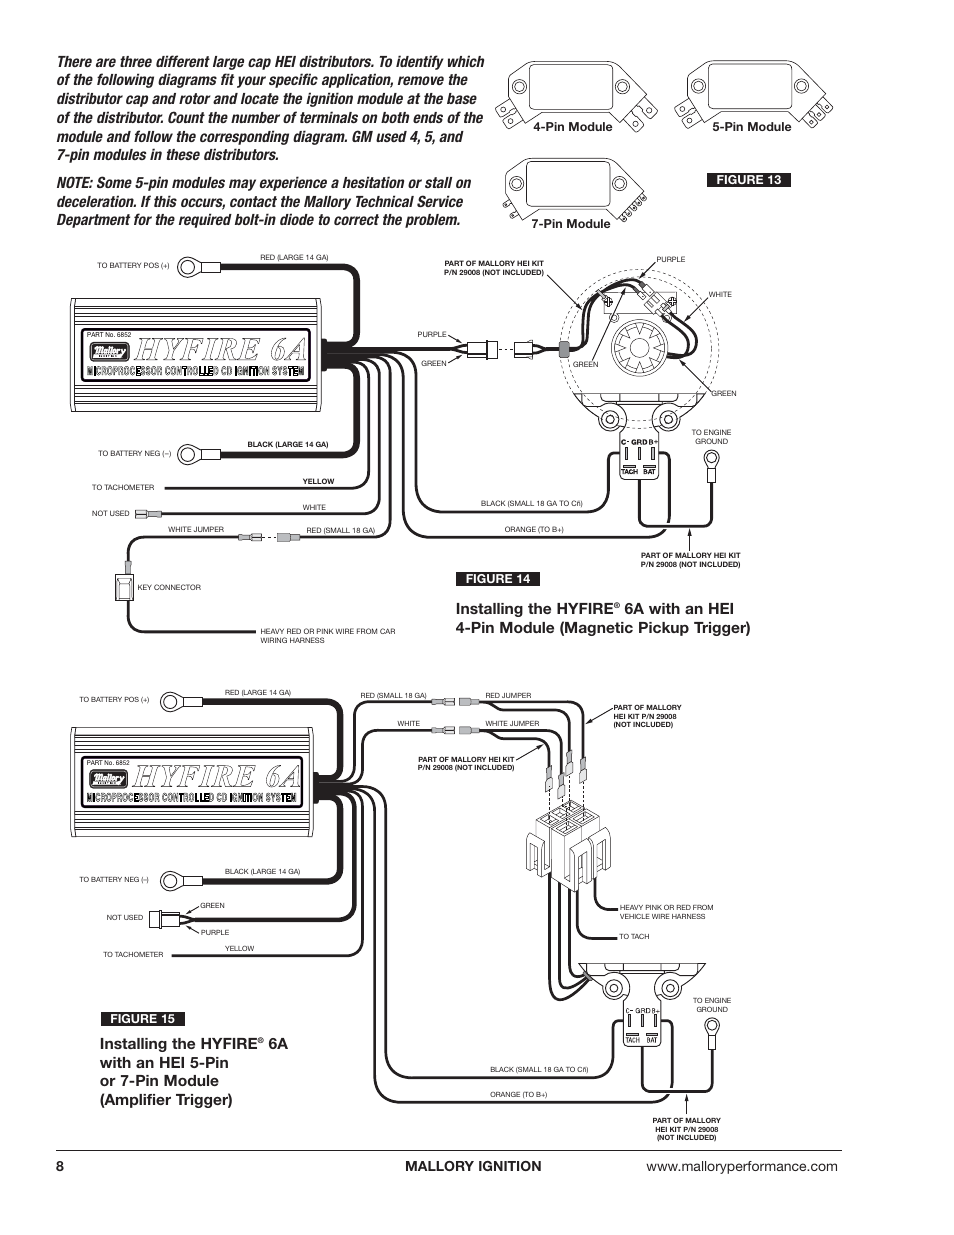 mallory ignition mallory hyfire 6a and 6al series electronic ignition controls 6852m_6853m page8?resize=665%2C861 mallory ivc wiring diagram conventional fire alarm wiring diagram  at creativeand.co